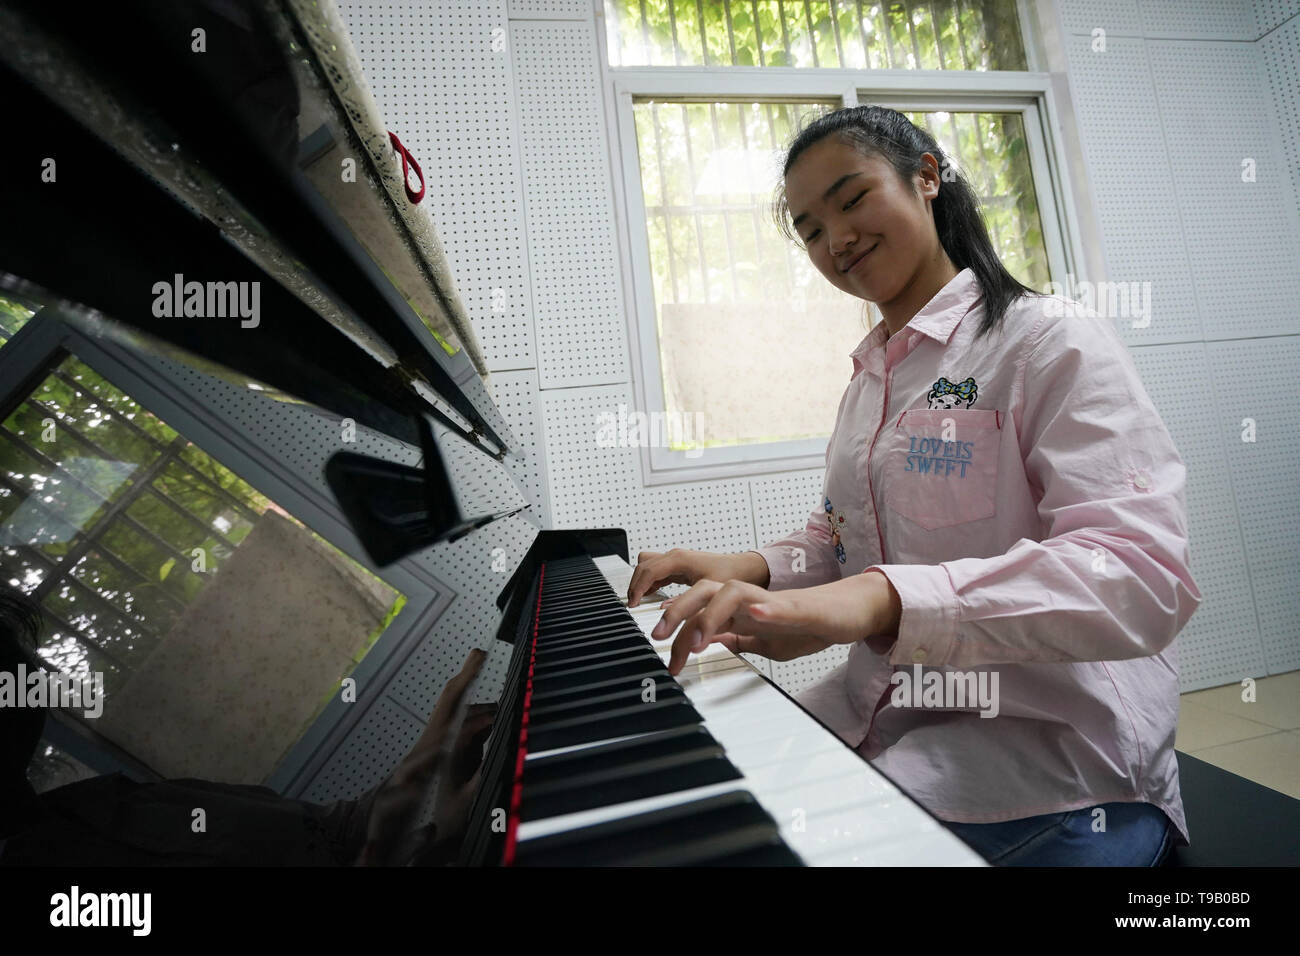 (190518) -- NANJING, May 18, 2019 (Xinhua) -- Zhou Wenqing plays the music composed by herself at the piano room in Nanjing Normal University of Special Education in Nanjing, east China's Jiangsu Province, May 17, 2019. Wu Yifan, 22, and Zhou Wenqing, 21, are schoolmates in Nanjing Normal University of Special Education. Both of them lost eyesight in their childhood. In their spare time, Wu likes doing makeup, paper-cutting as well as playing the Guzheng, Chinese Zither. While Zhou enjoys playing the piano. Zhou once developed a computer game for visually impaired people. The two girls hav Stock Photo